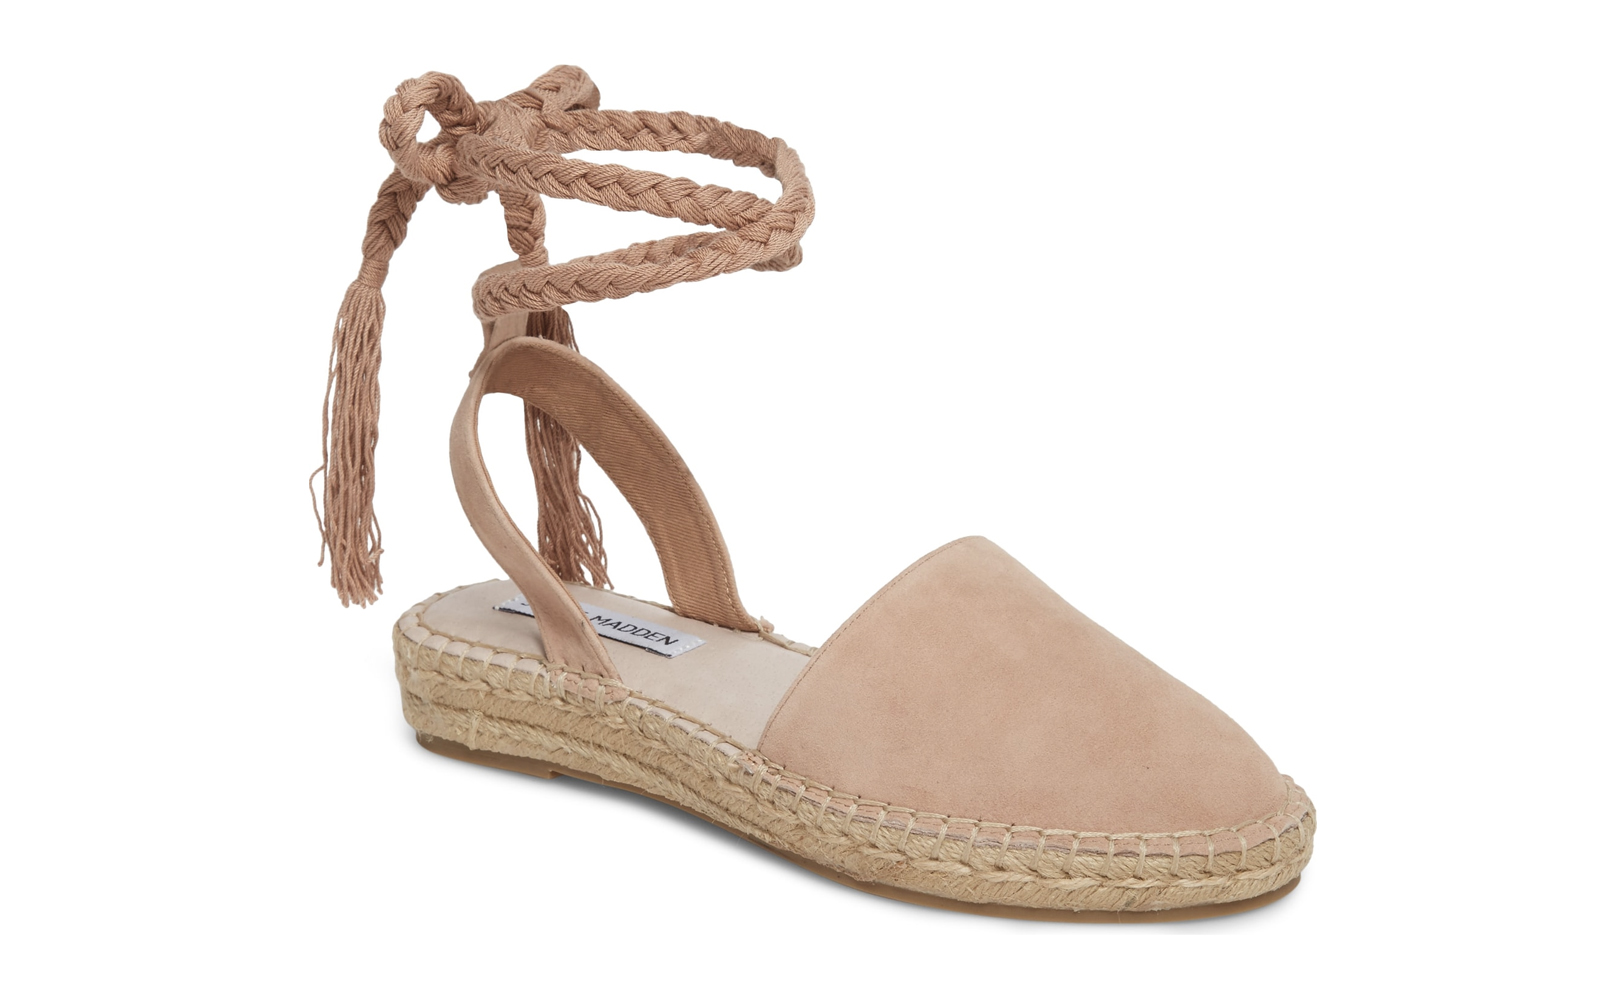 The best July 4th sales Steve Madden espadrille sandals